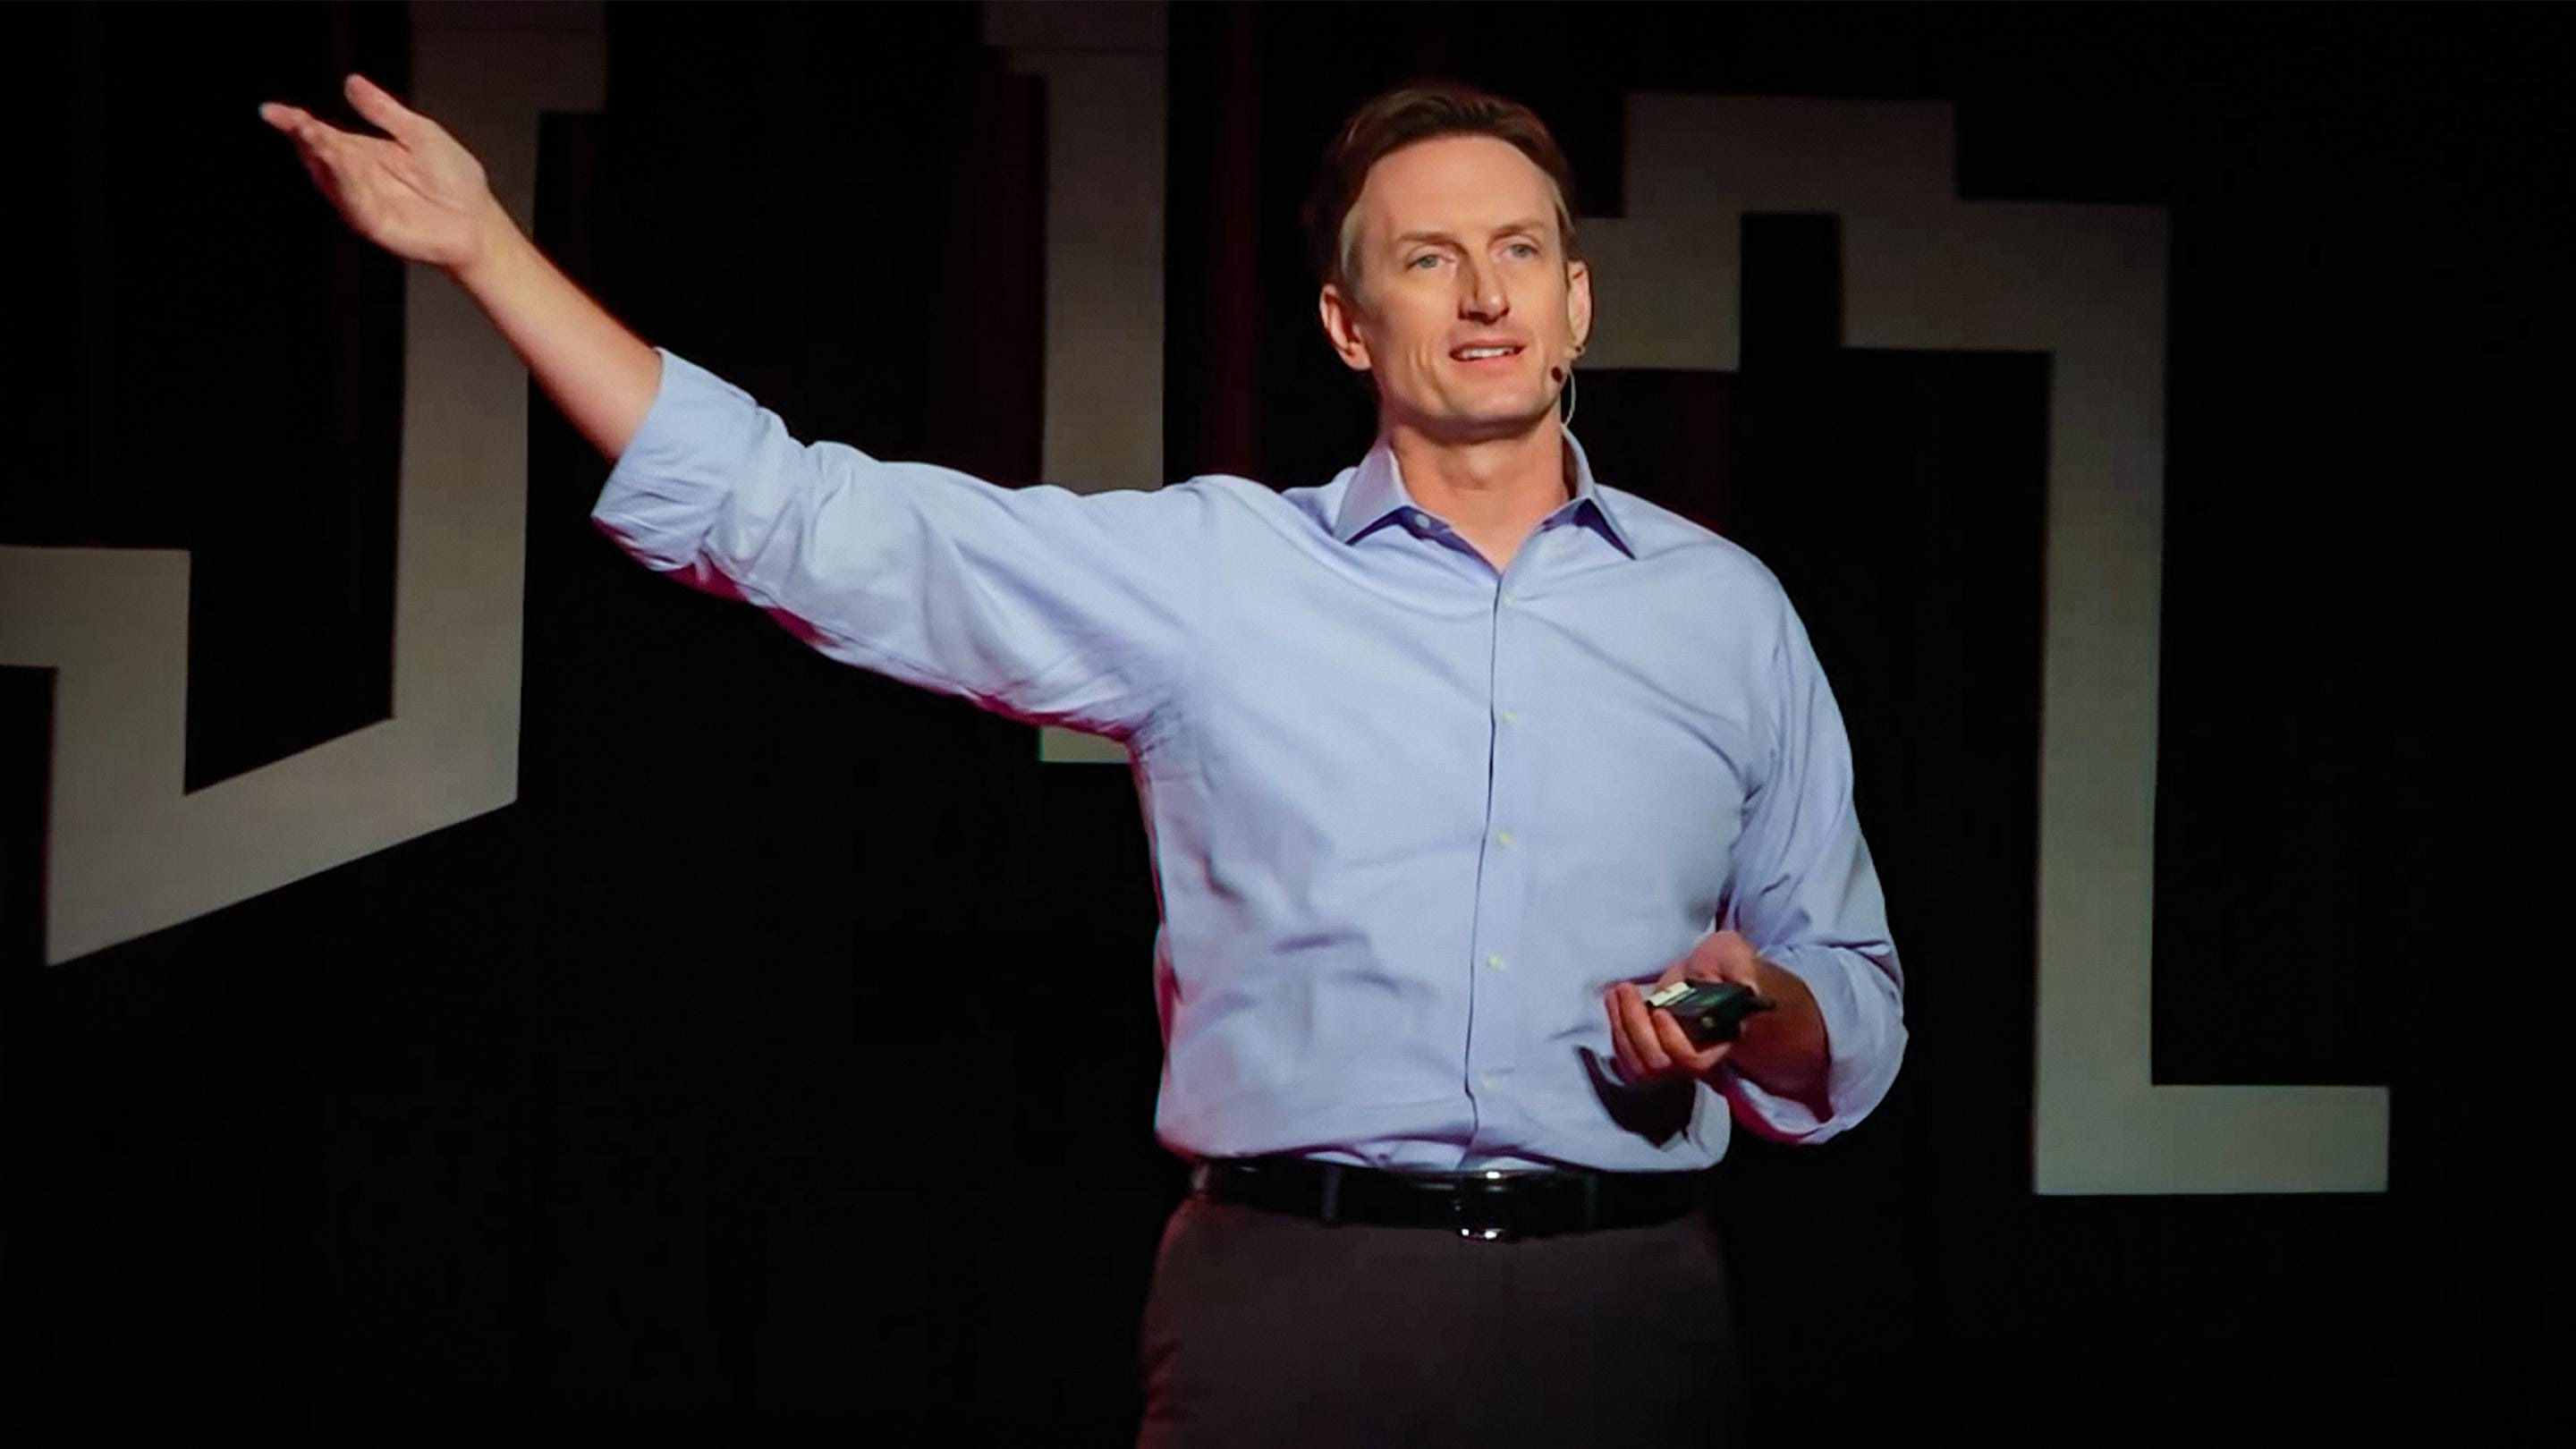 「Timothy Ihrig:讓人生的最後走得舒適」- What We Can Do to Die Well